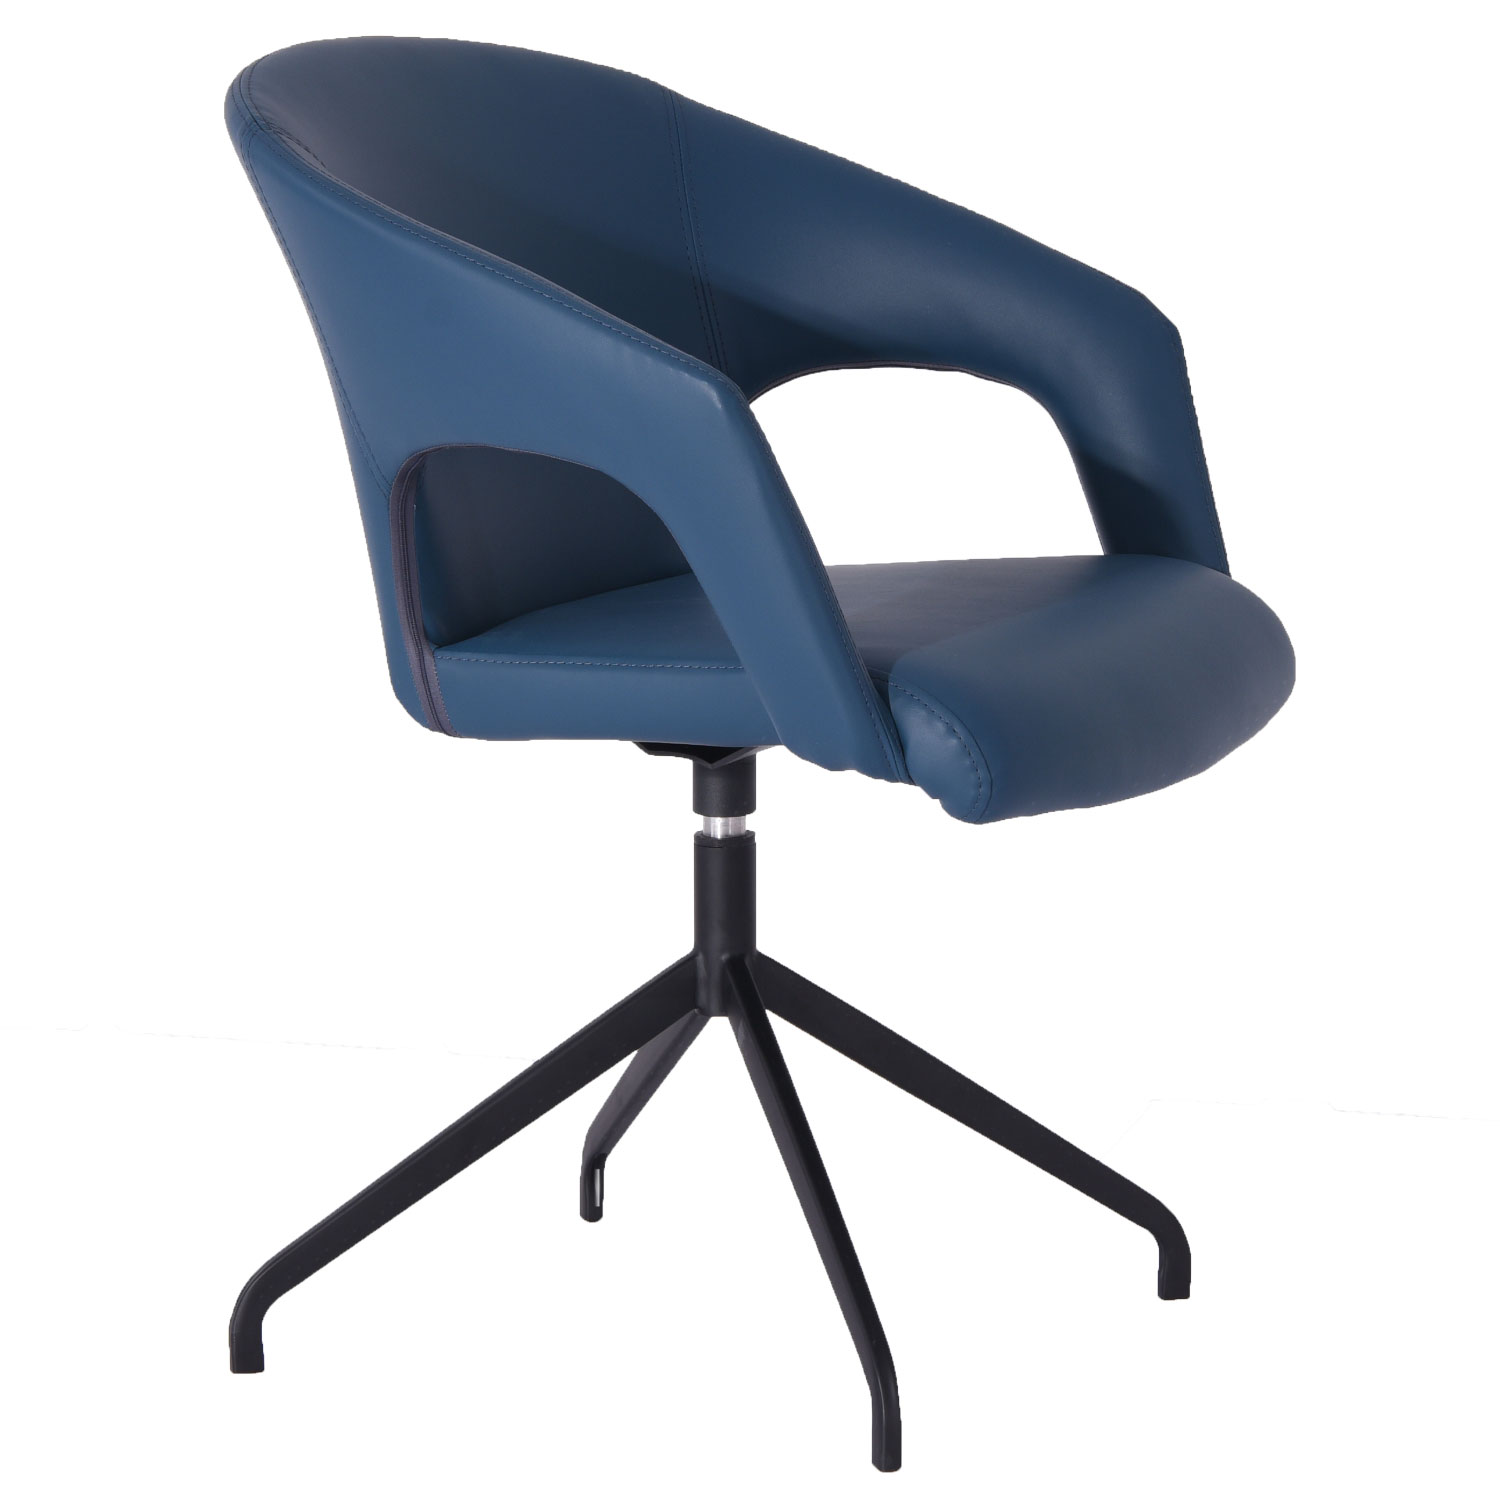 Peachy Gordon Swivel Dining Chair In Navy Leatherette On Black Metal Legs Set Of 2 By Whiteline Imports Machost Co Dining Chair Design Ideas Machostcouk